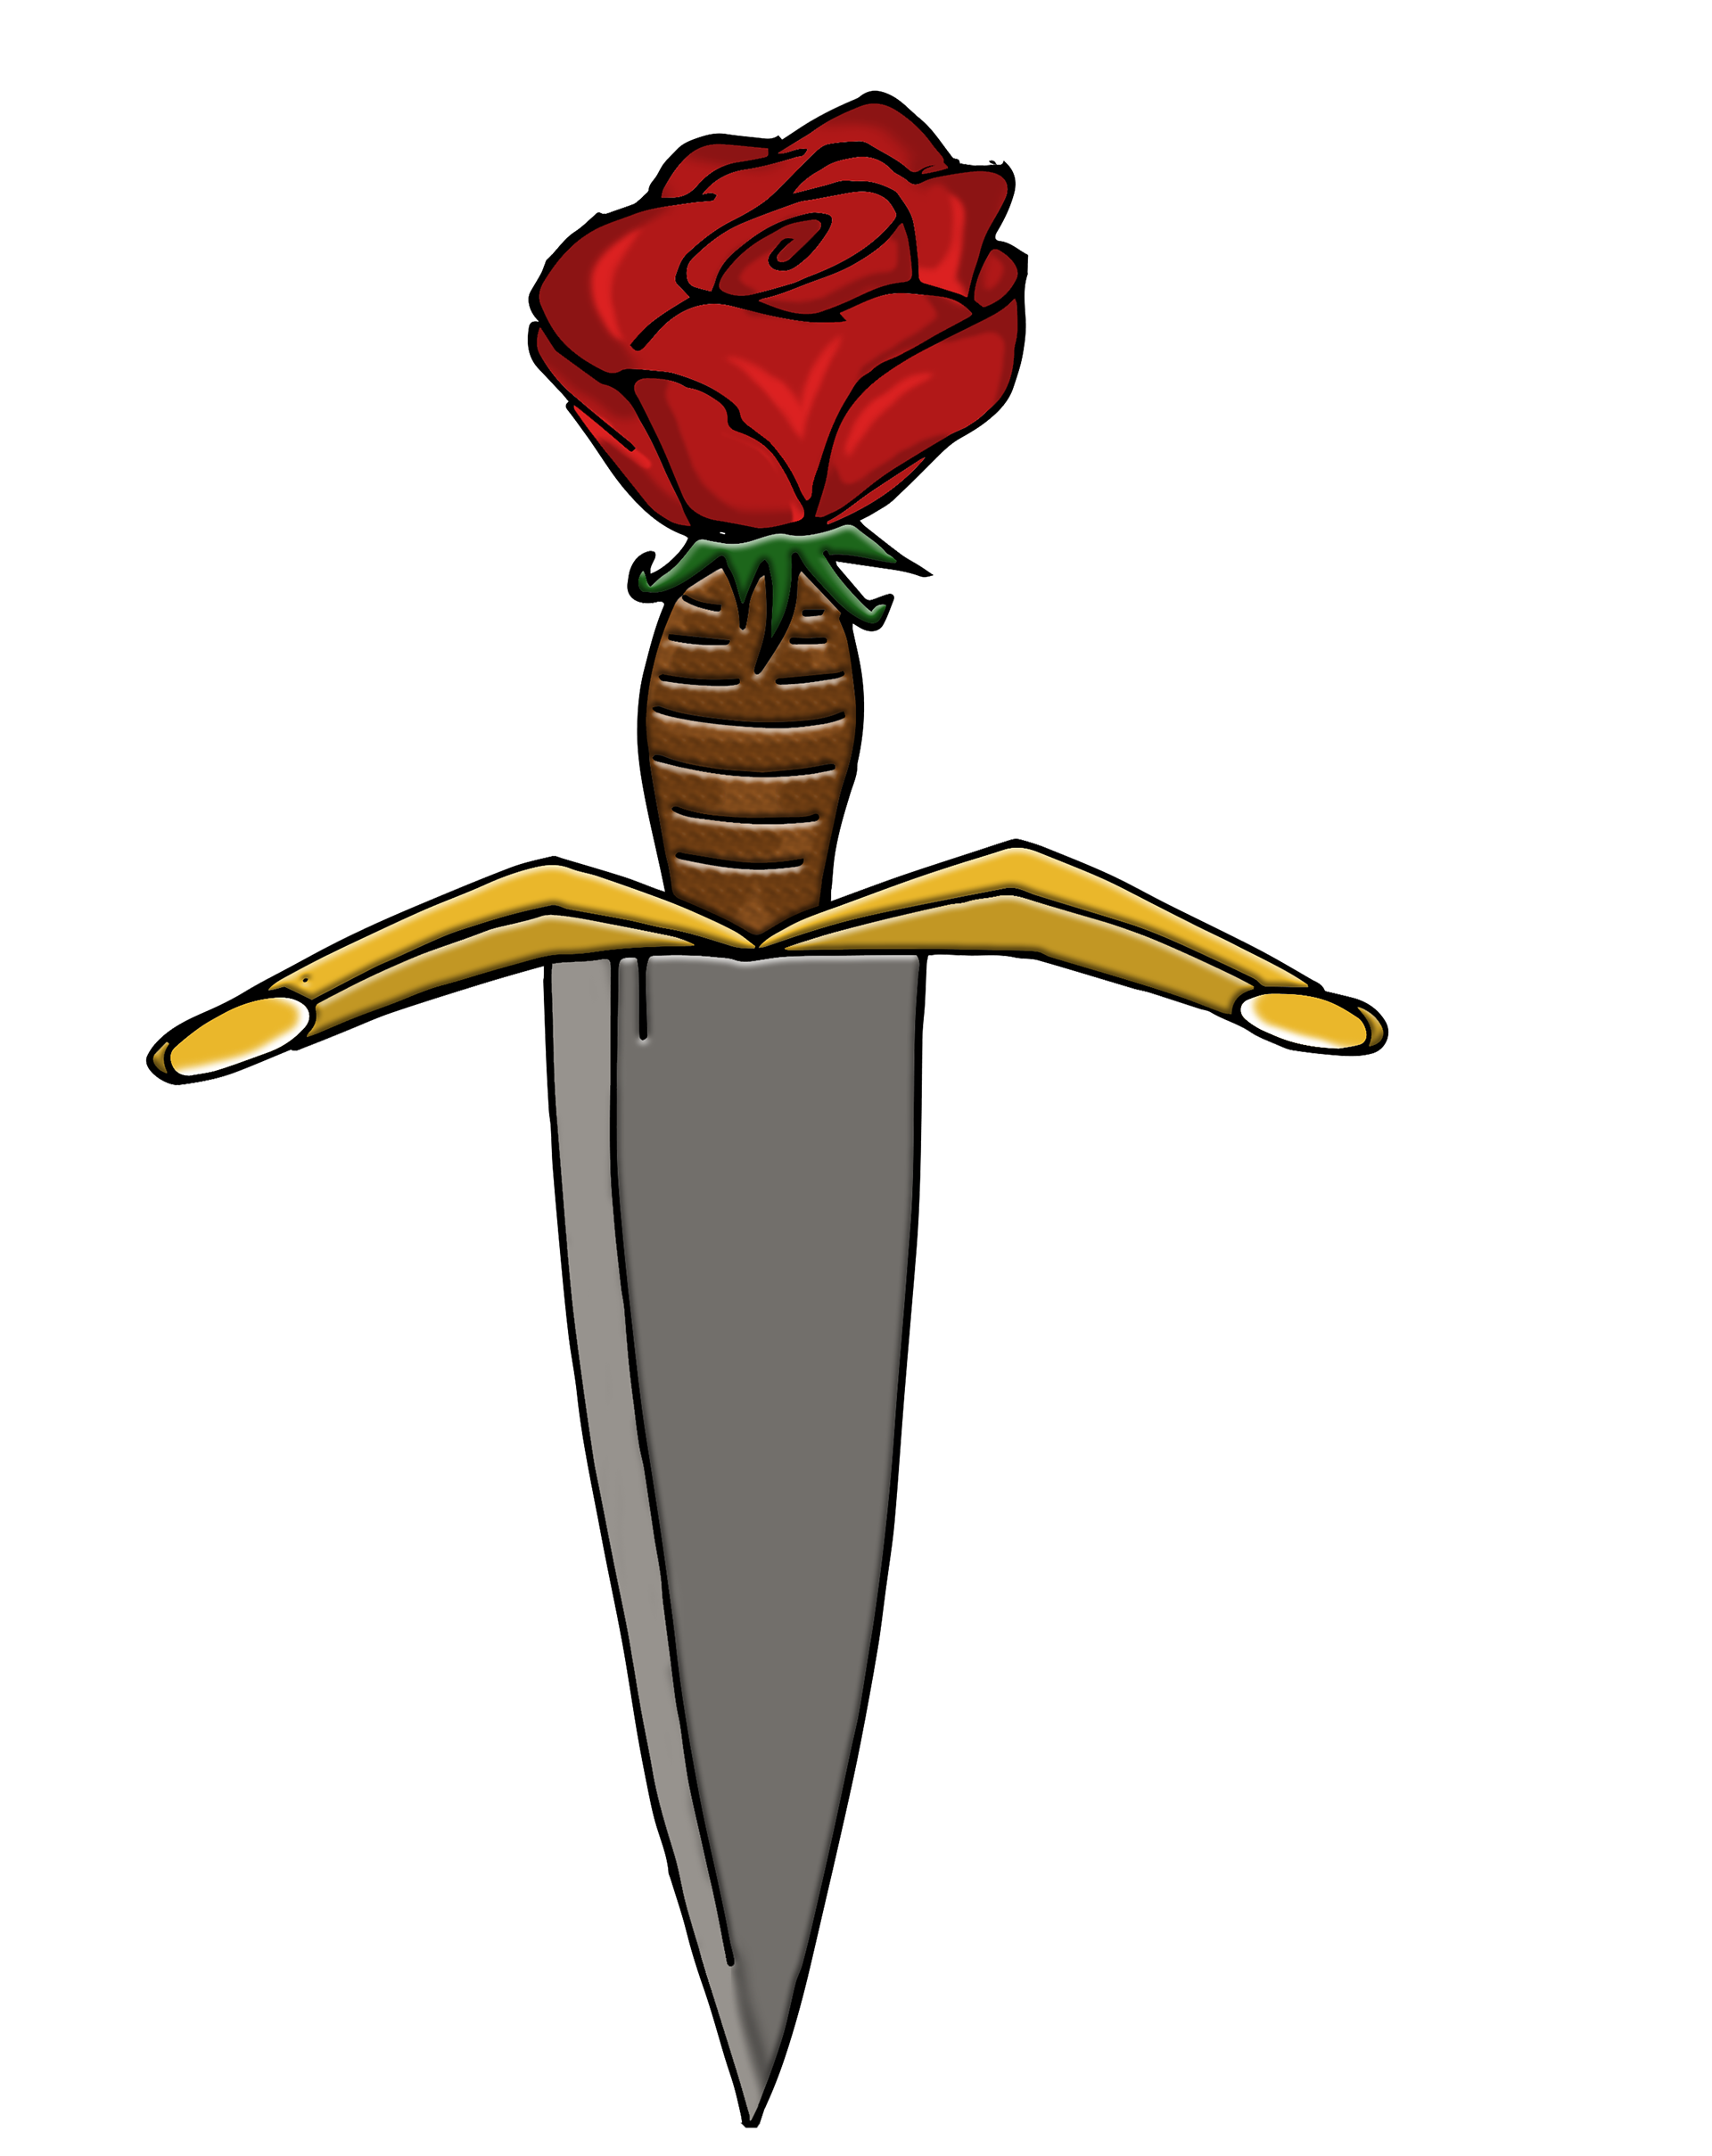 Transparent dagger romeo and juliet. Shaun lewis poster project